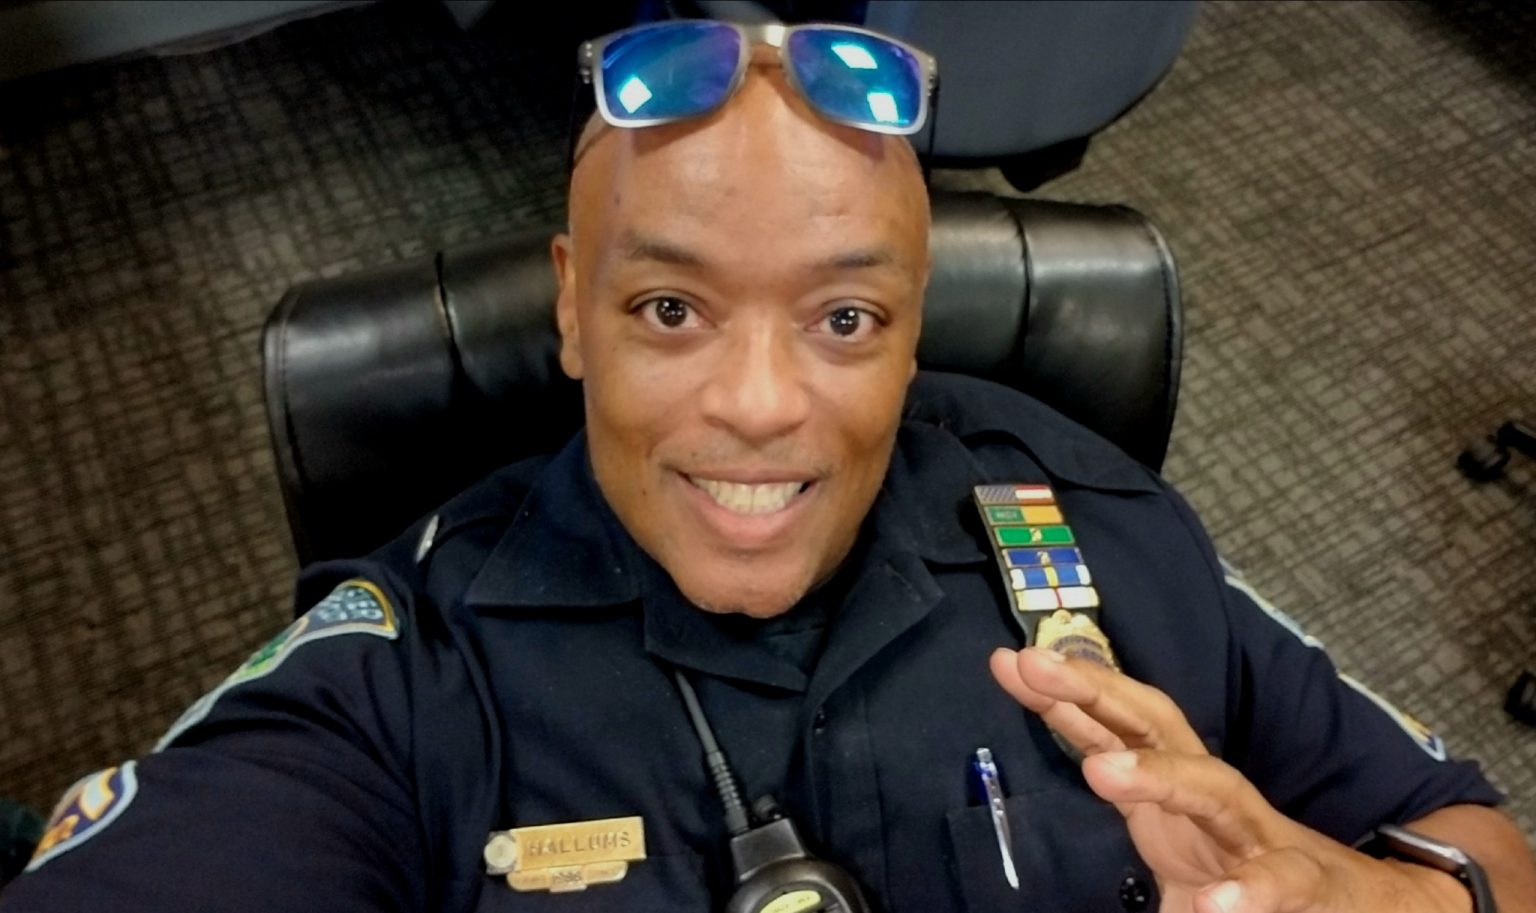 I'm a black man and a 30 year veteran police officer - and I'm confused. Do our lives matter?